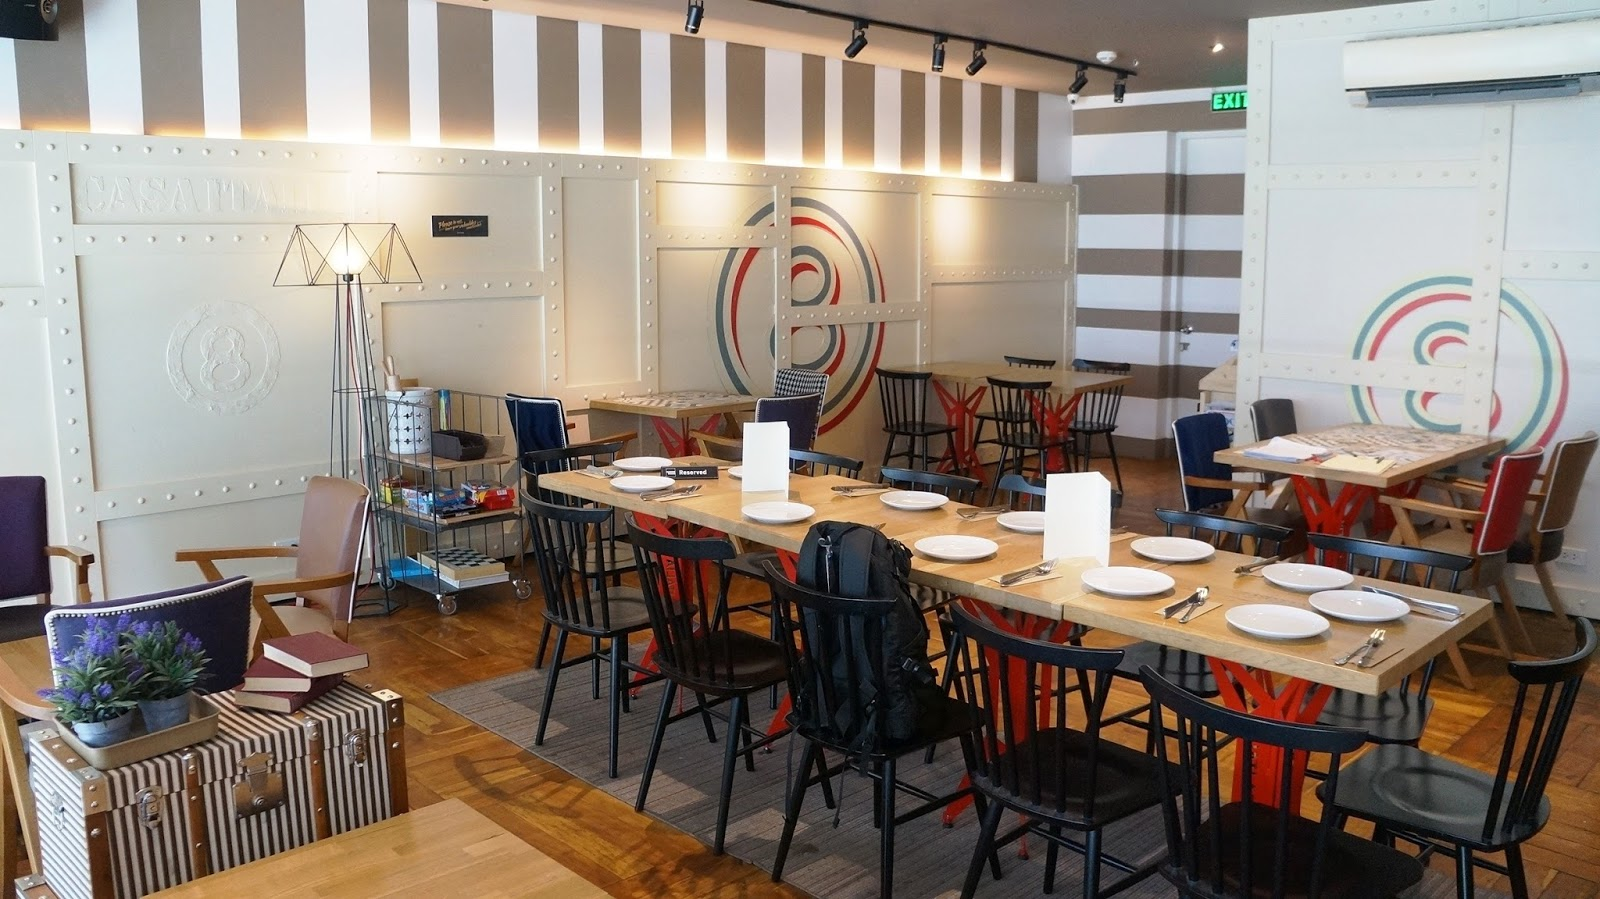 Casa Italia Cafe Food Tasting Event With Zomato Foodies Wazzup Pilipinas News And Events